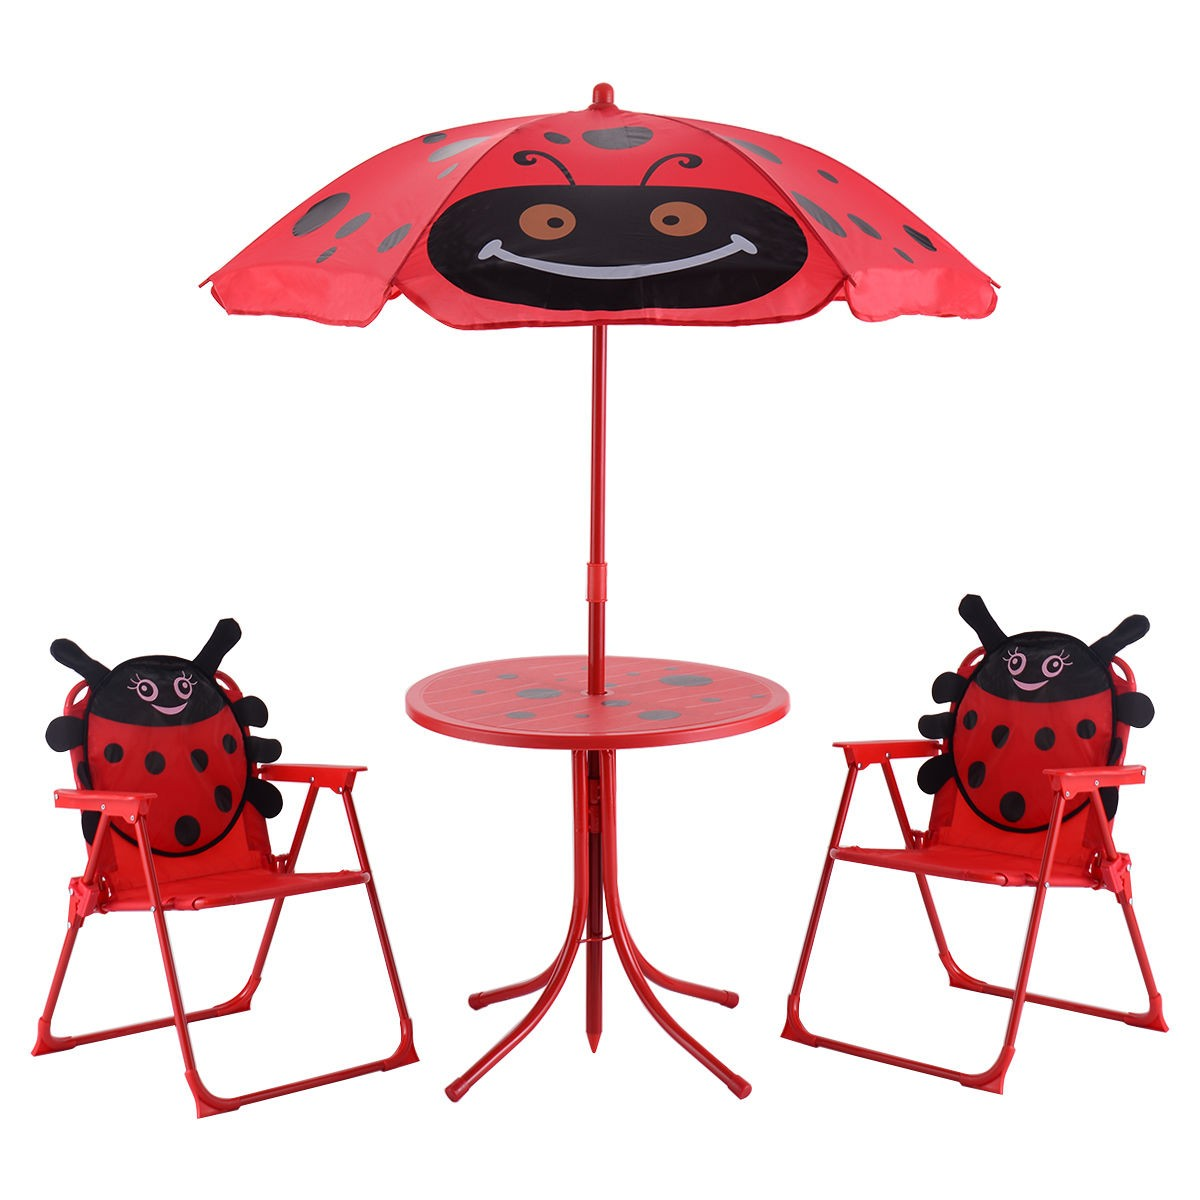 Stupendous Details About Outdoor Garden Ladybug Print Kids Child Table 2 Folding Chairs W Umbrella Beetle Inzonedesignstudio Interior Chair Design Inzonedesignstudiocom